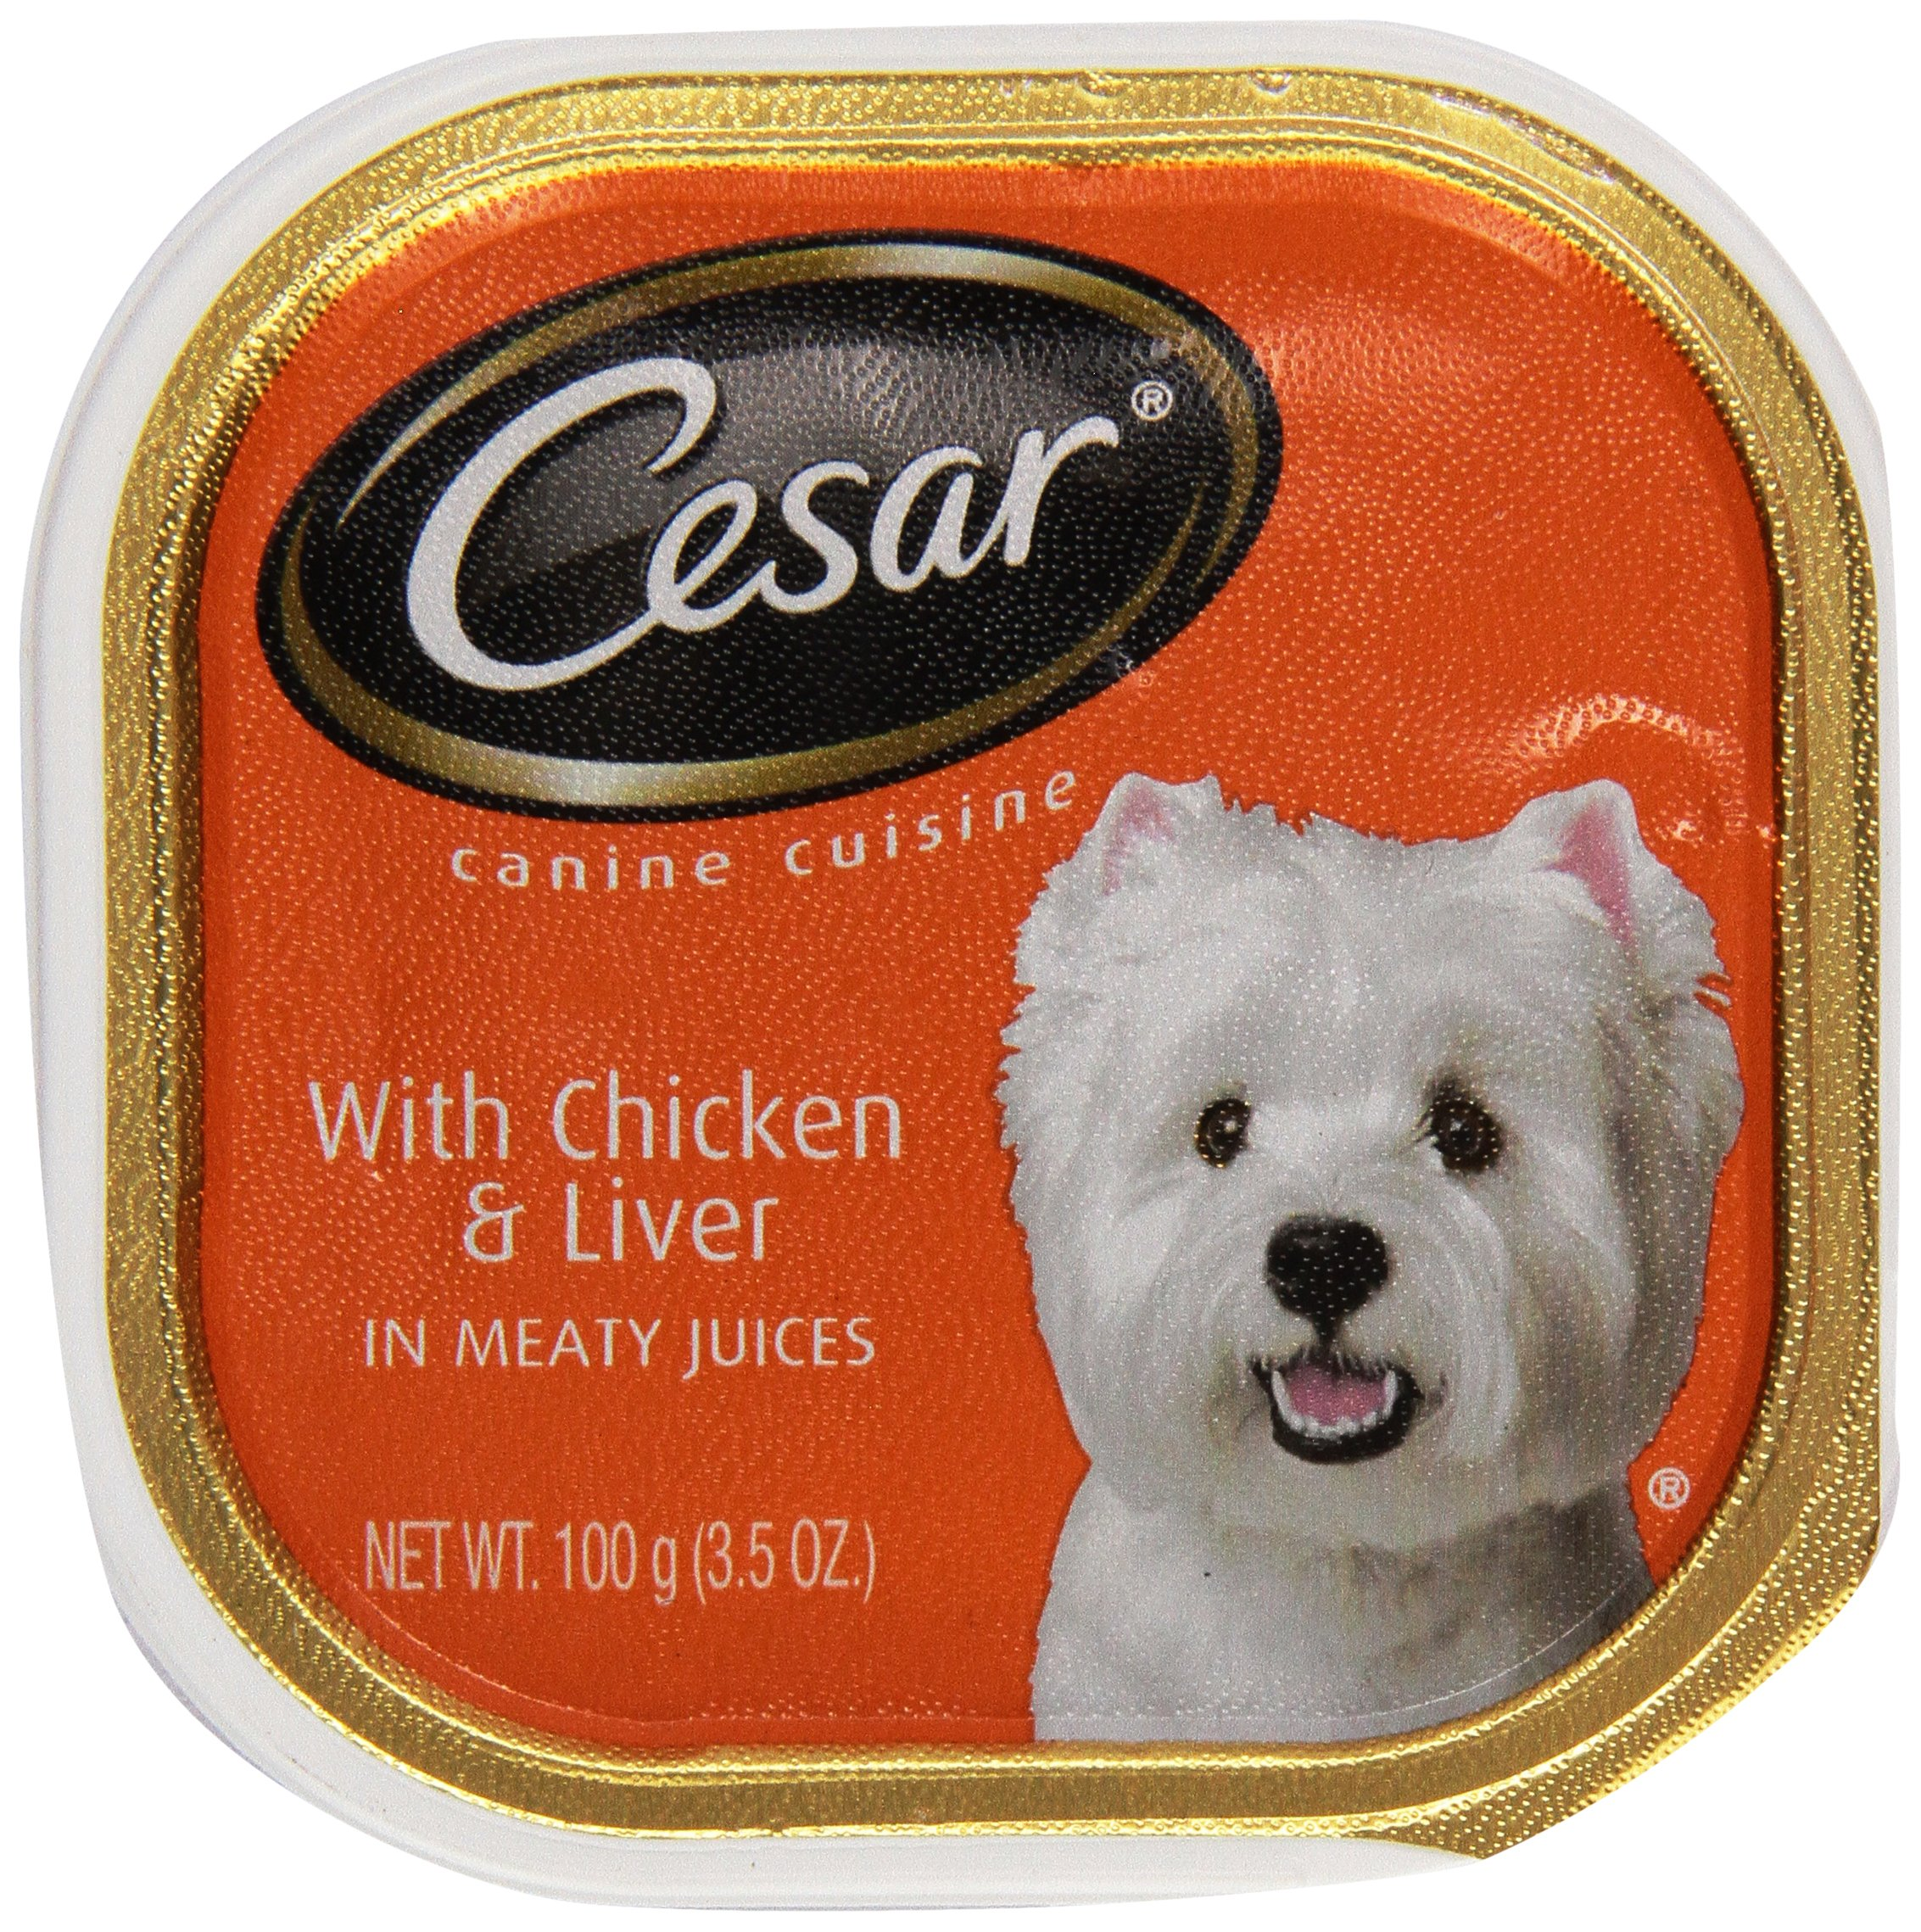 Mars Pet Care Mars Cesar Cuisine Chicken/Liver 3.5 oz Cans, 1 Count, One Size